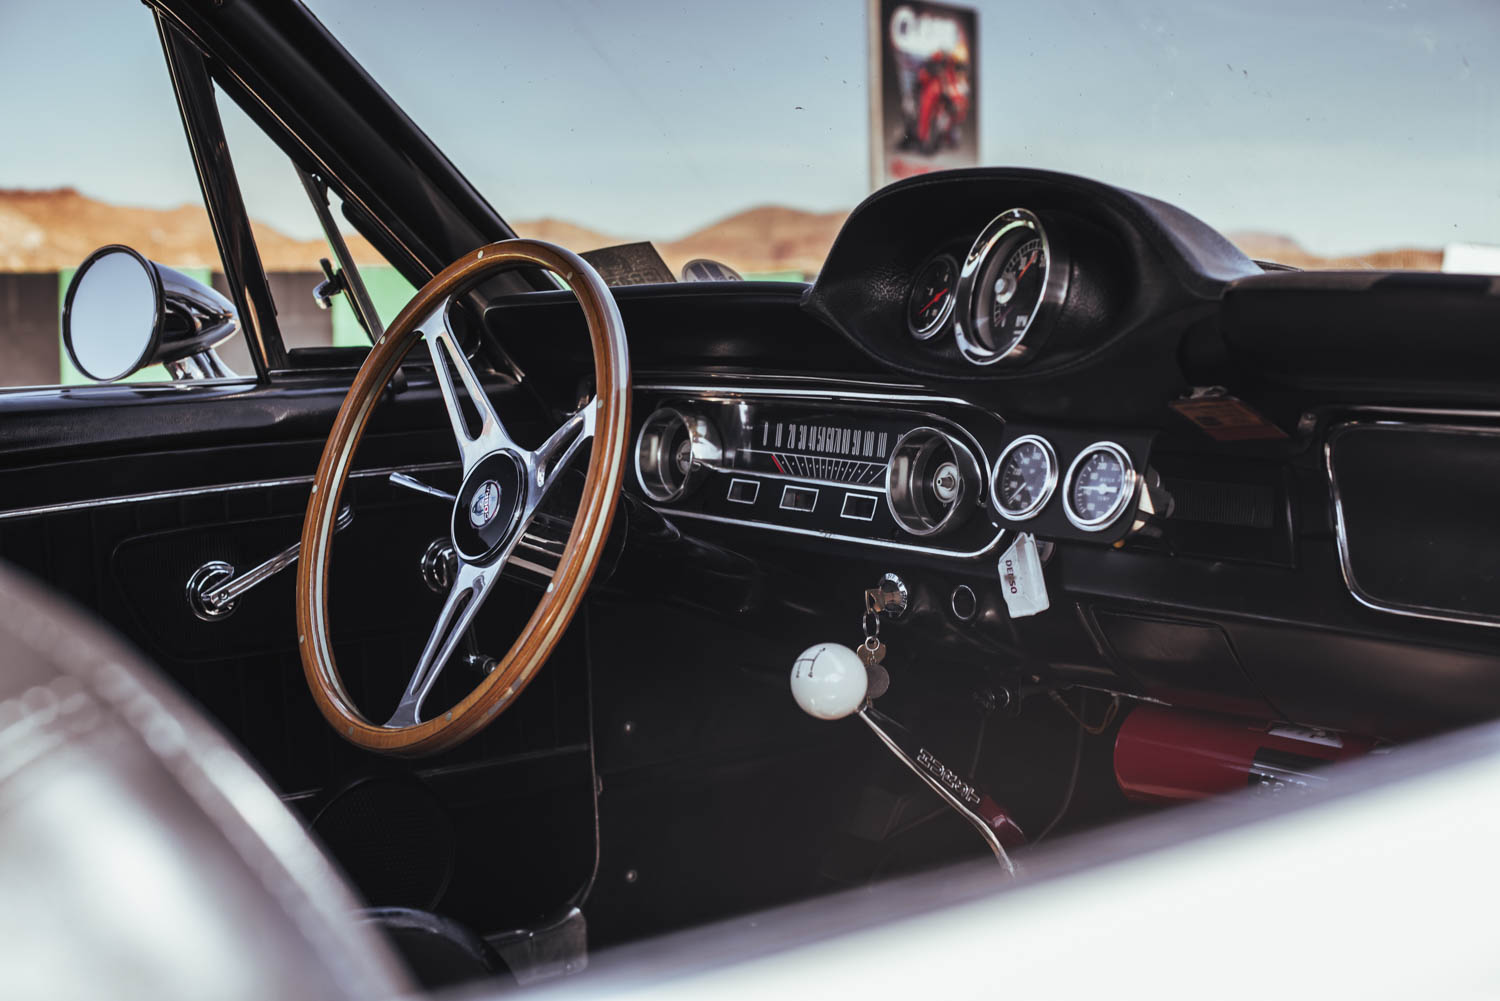 1965 Ford Mustang Shelby GT350 steering wheel